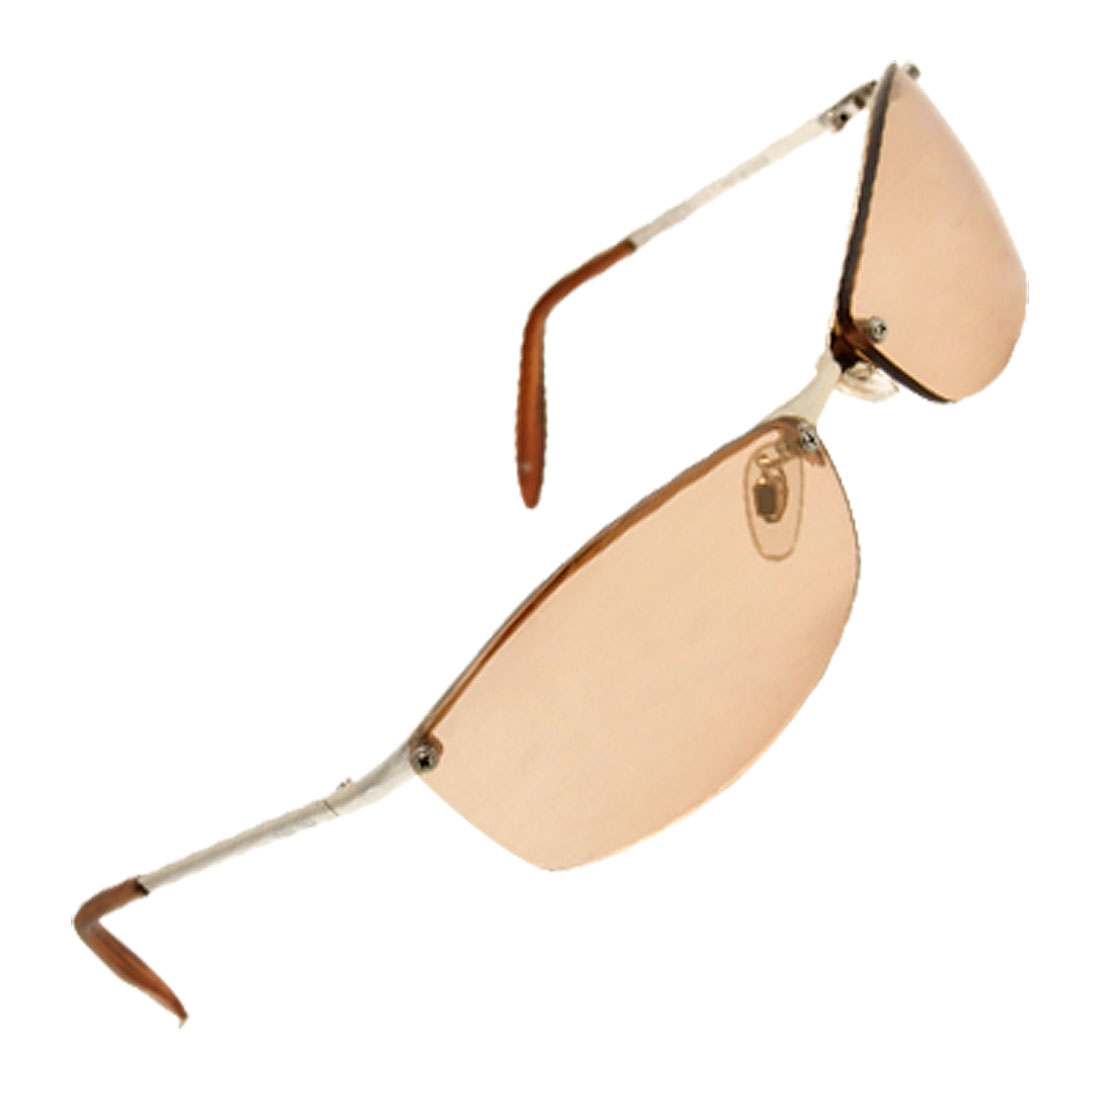 Fashion Silvery Metal Arms Tea Color Sunglasses Eyewear Spectacles